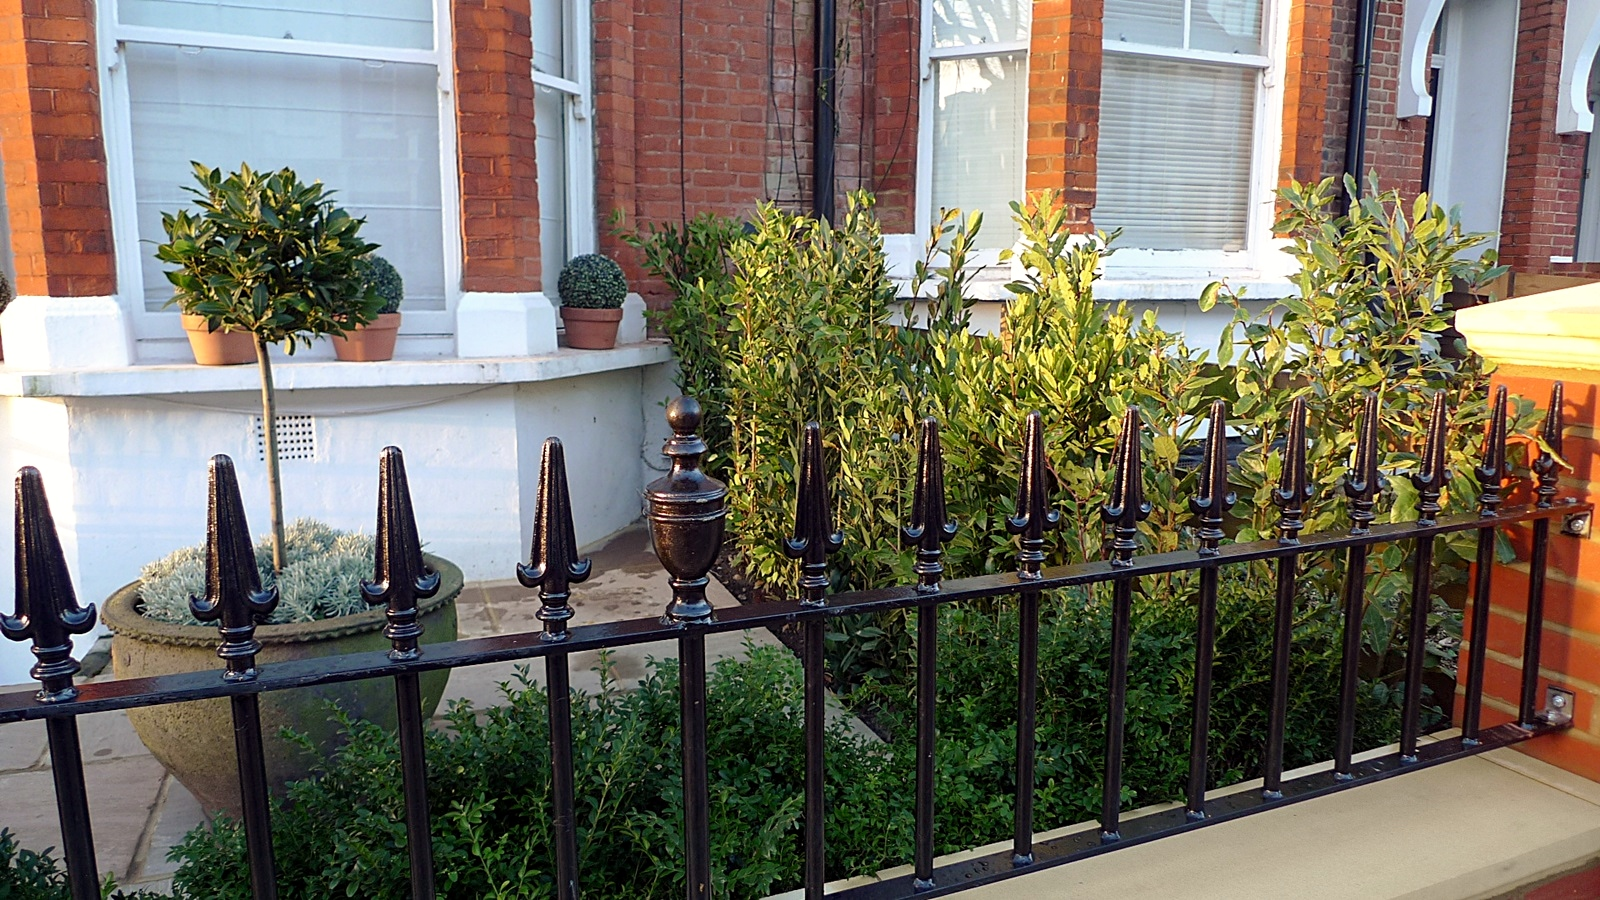 front garden ideas london unique front garden ideas london linsey evans victorian best style - Front Garden Ideas Terraced House